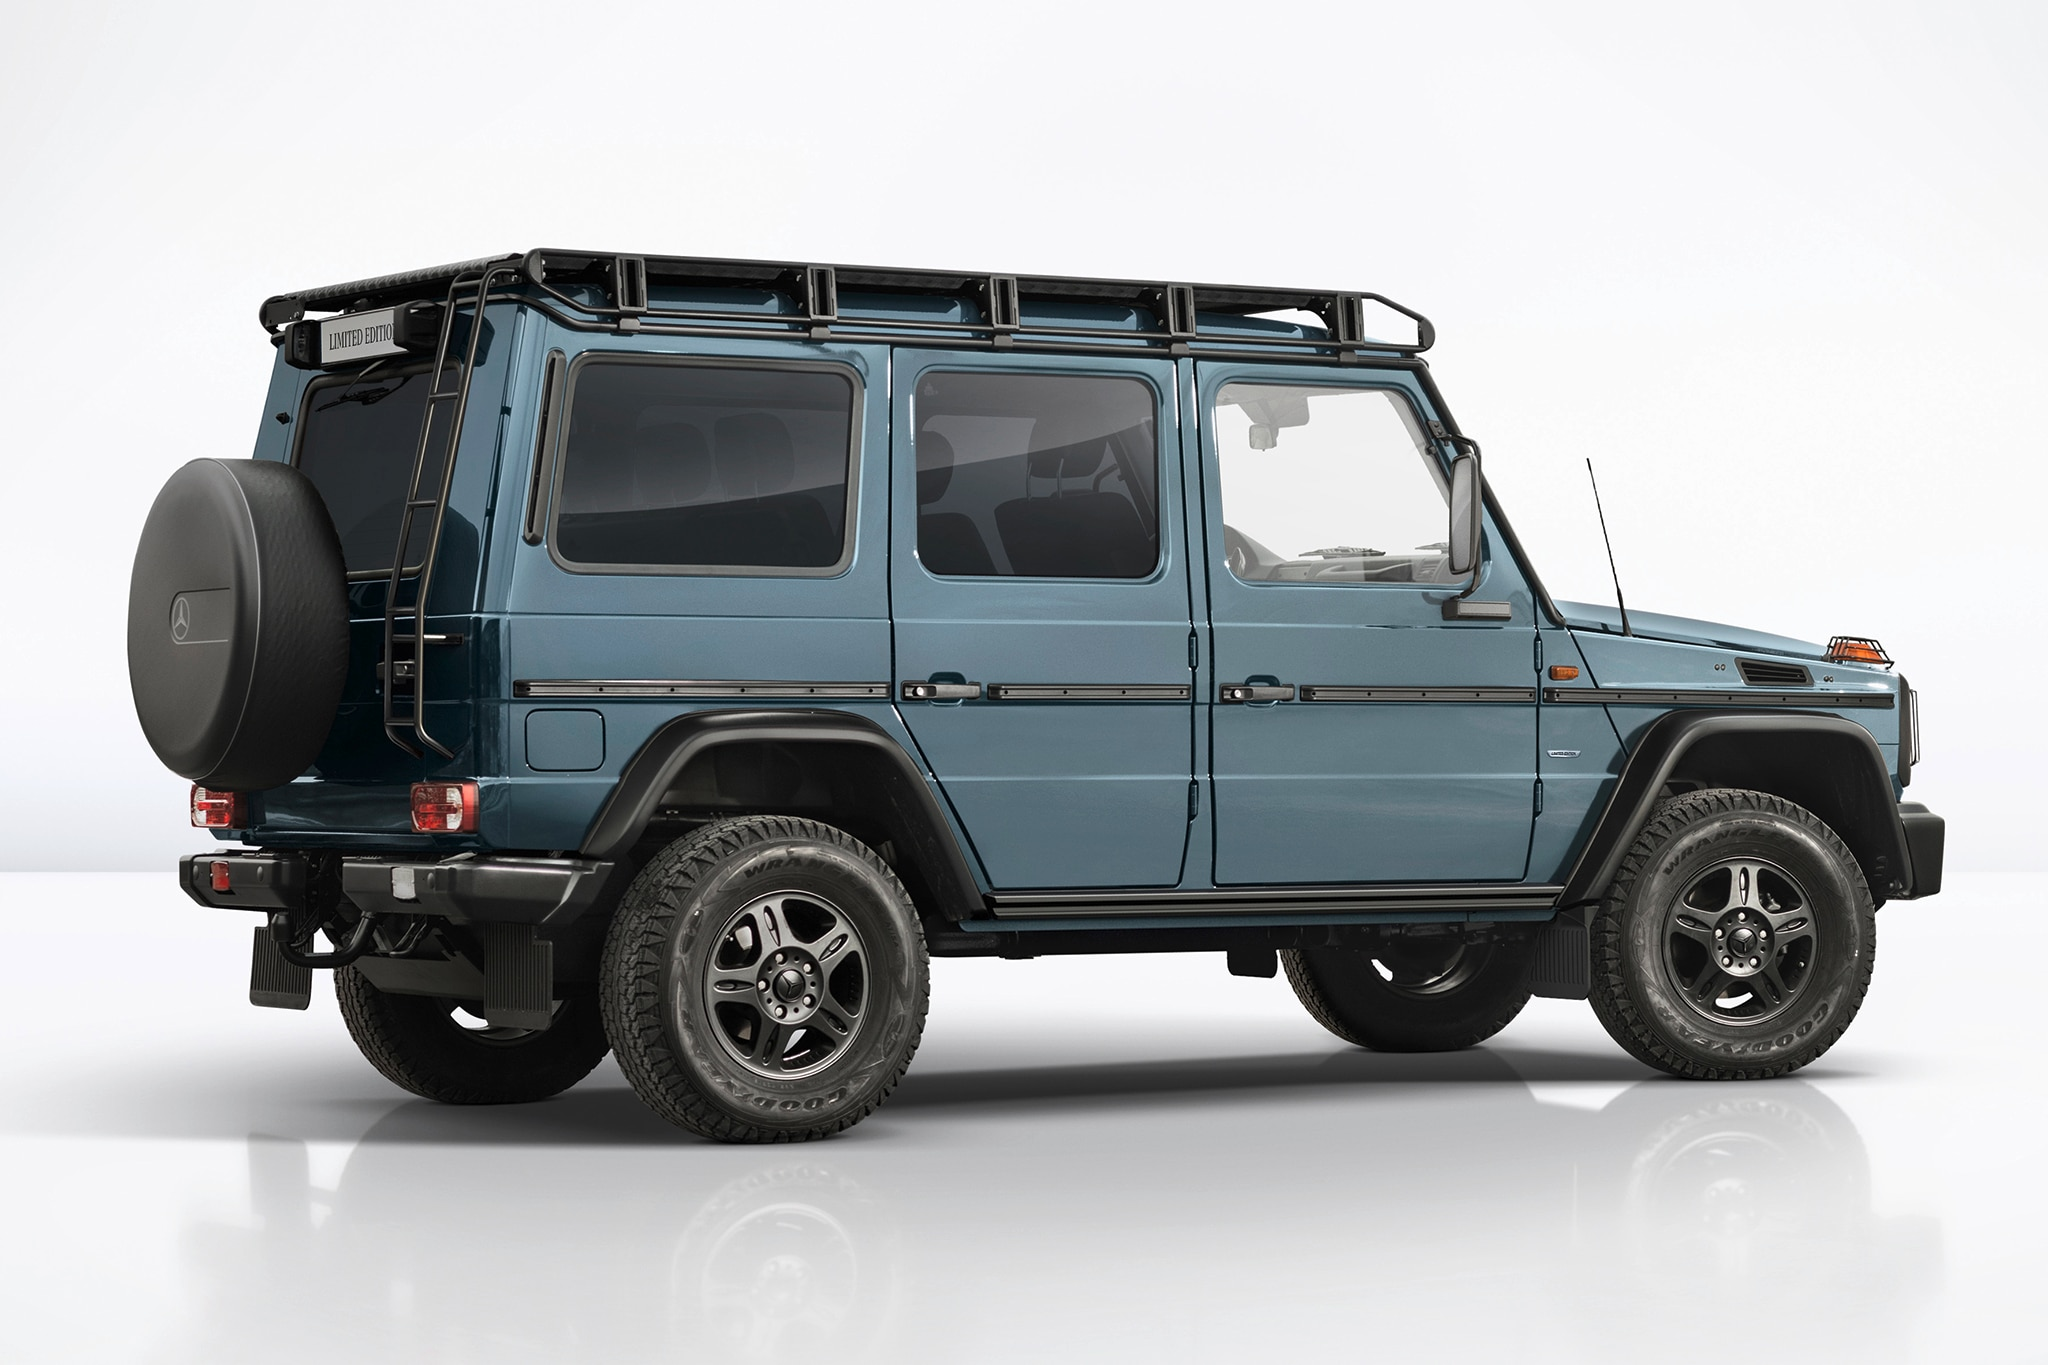 Mercedes Benz G Wagen Limited Edition